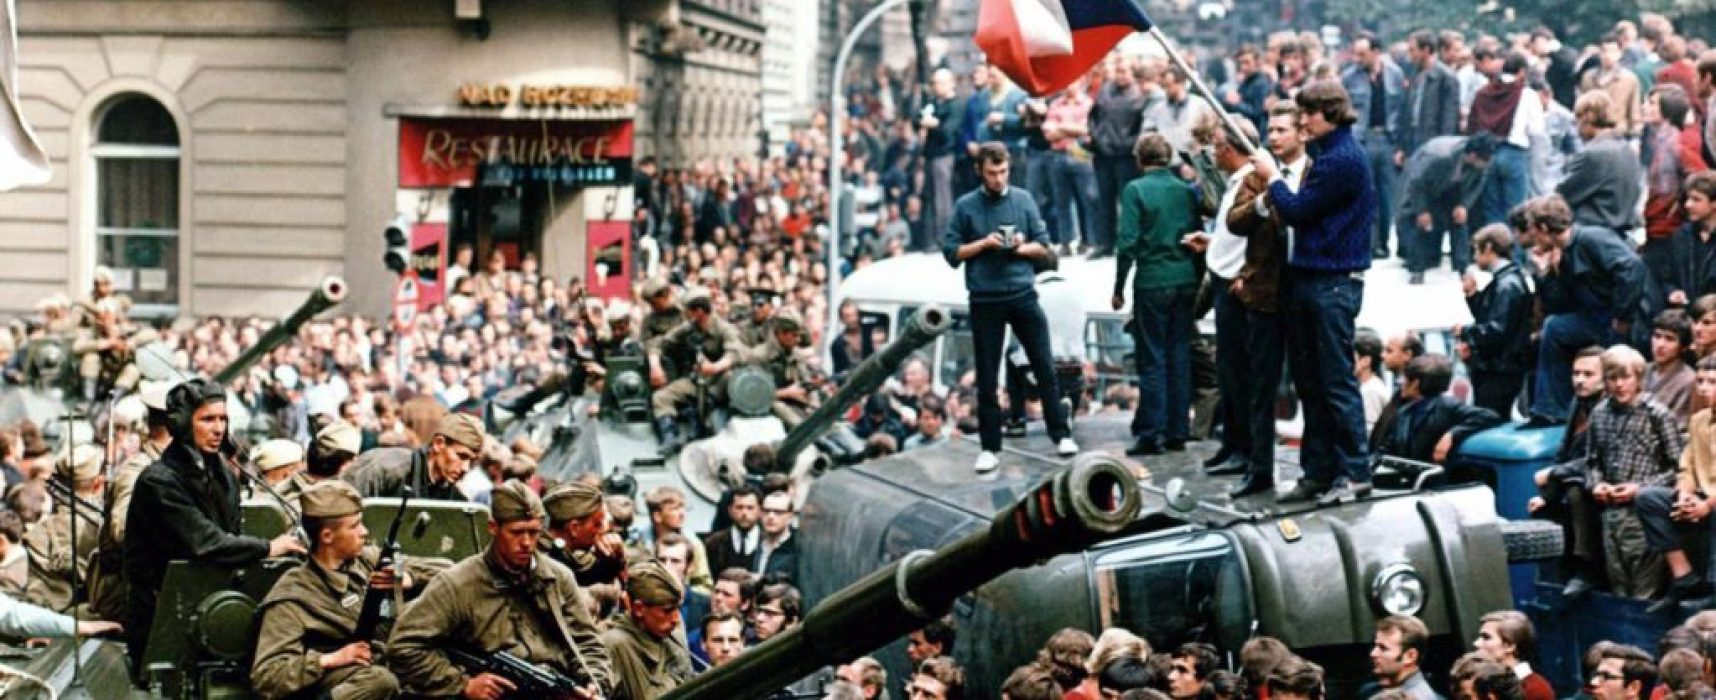 Russian Defense Ministry Site Op-Ed: Czechs Should Be Grateful for 1968 Soviet Intervention